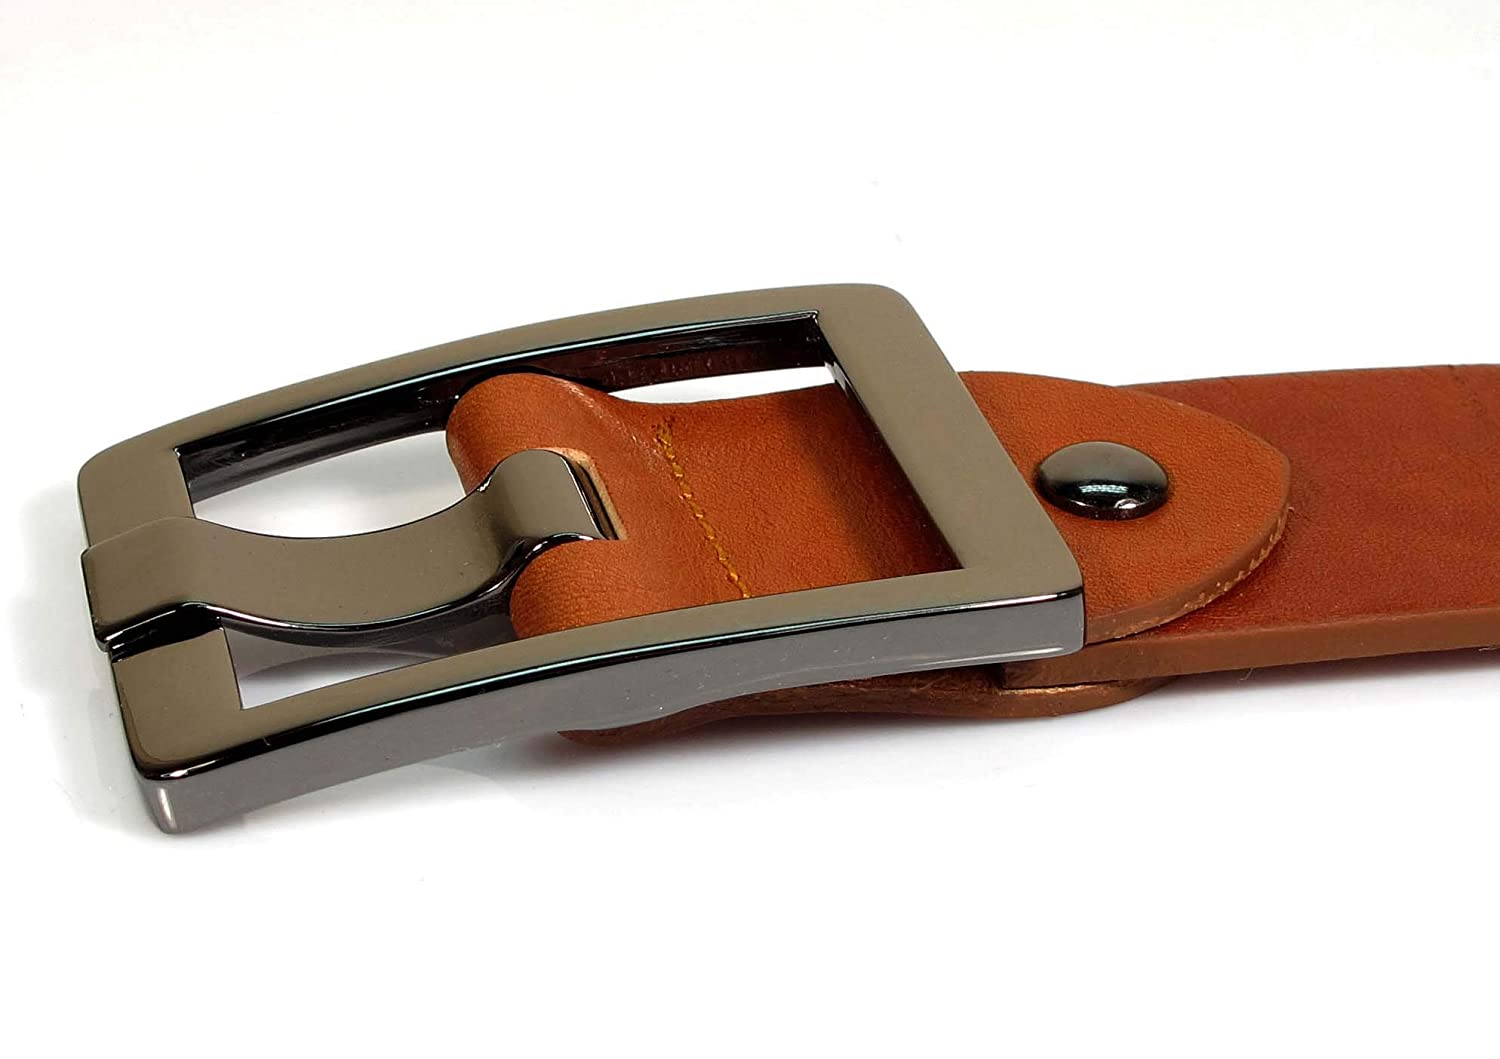 TM1 Mens Real Genuine Leather Belt Black Brown White 1.5 Wide S-XL Casual Jeans